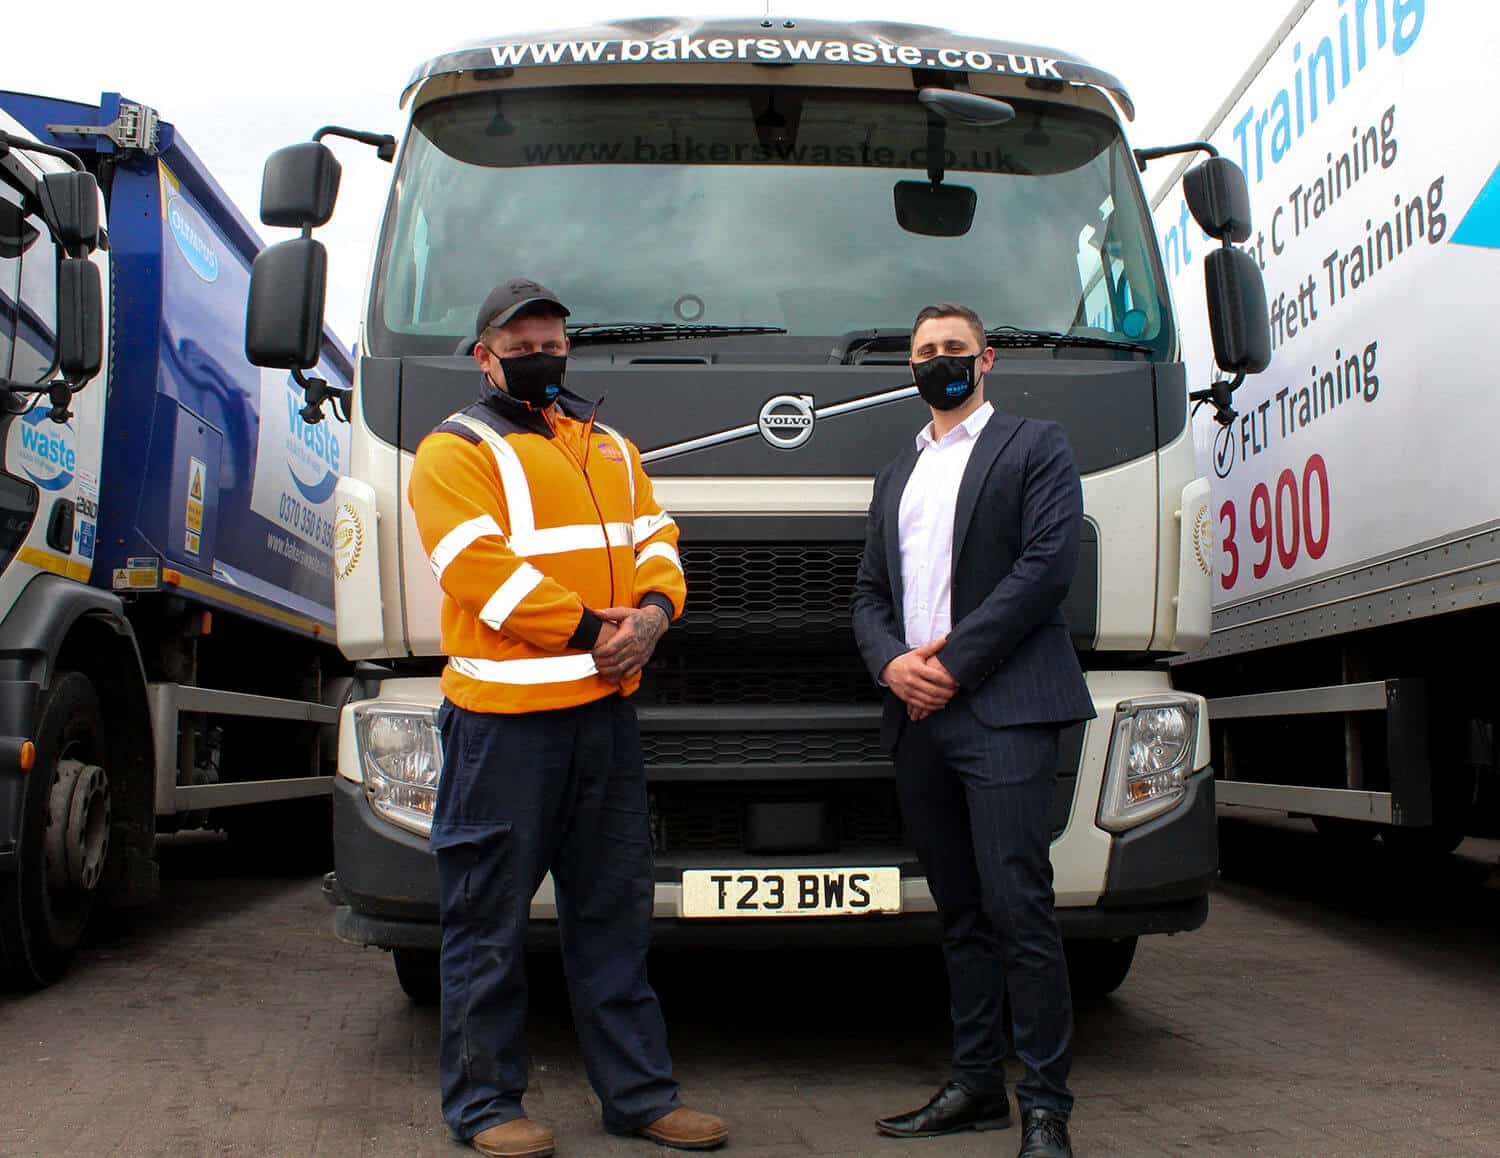 Kyle and Darrell stood in front of a trade refuse vehicle